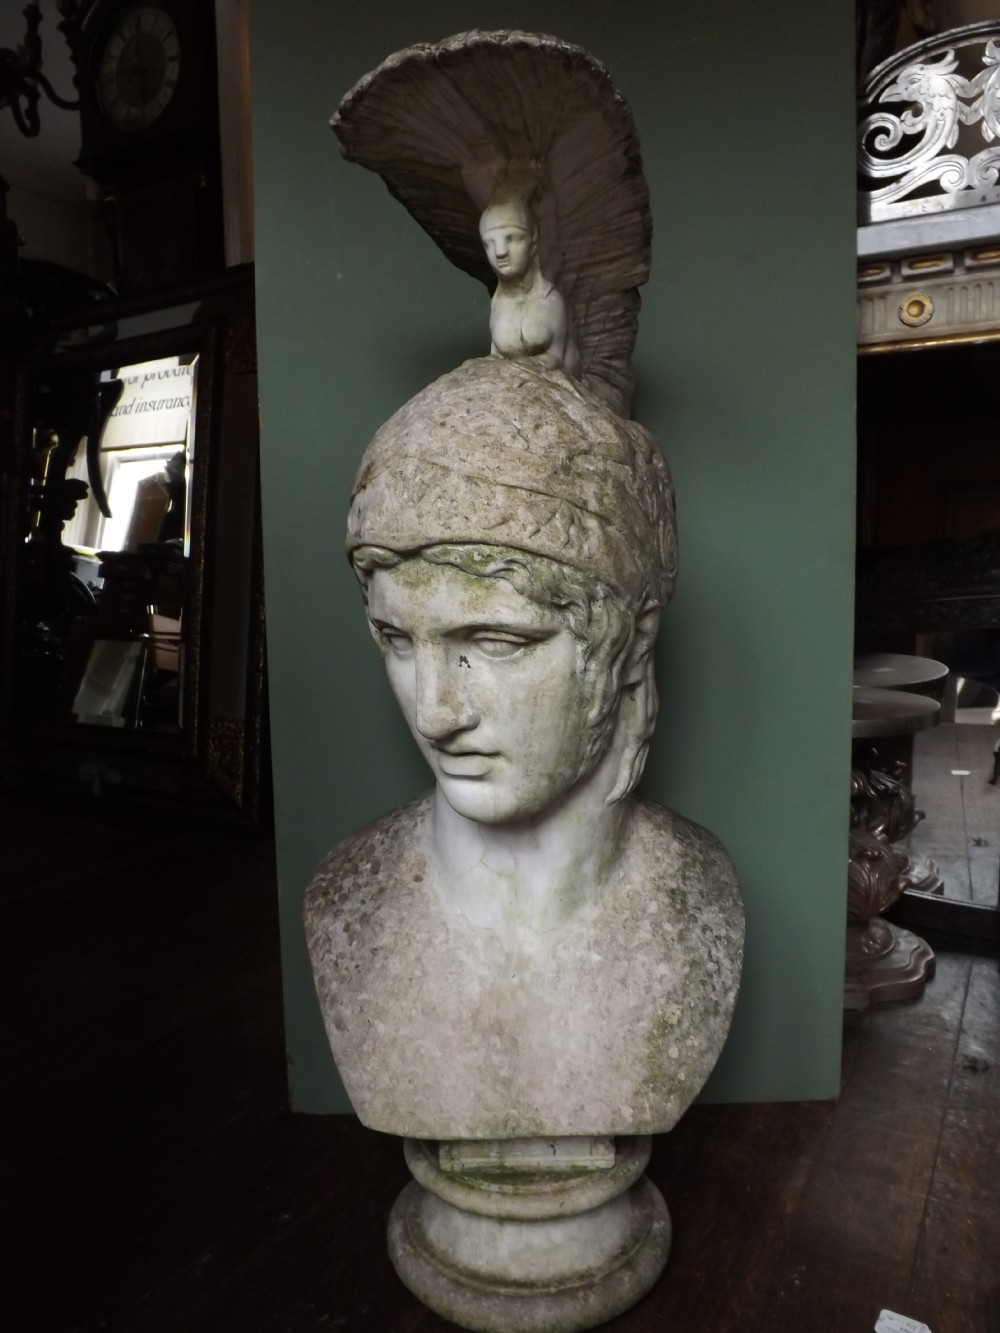 impressive c20th cast composition 'stone' bust study of ares the greek god of war